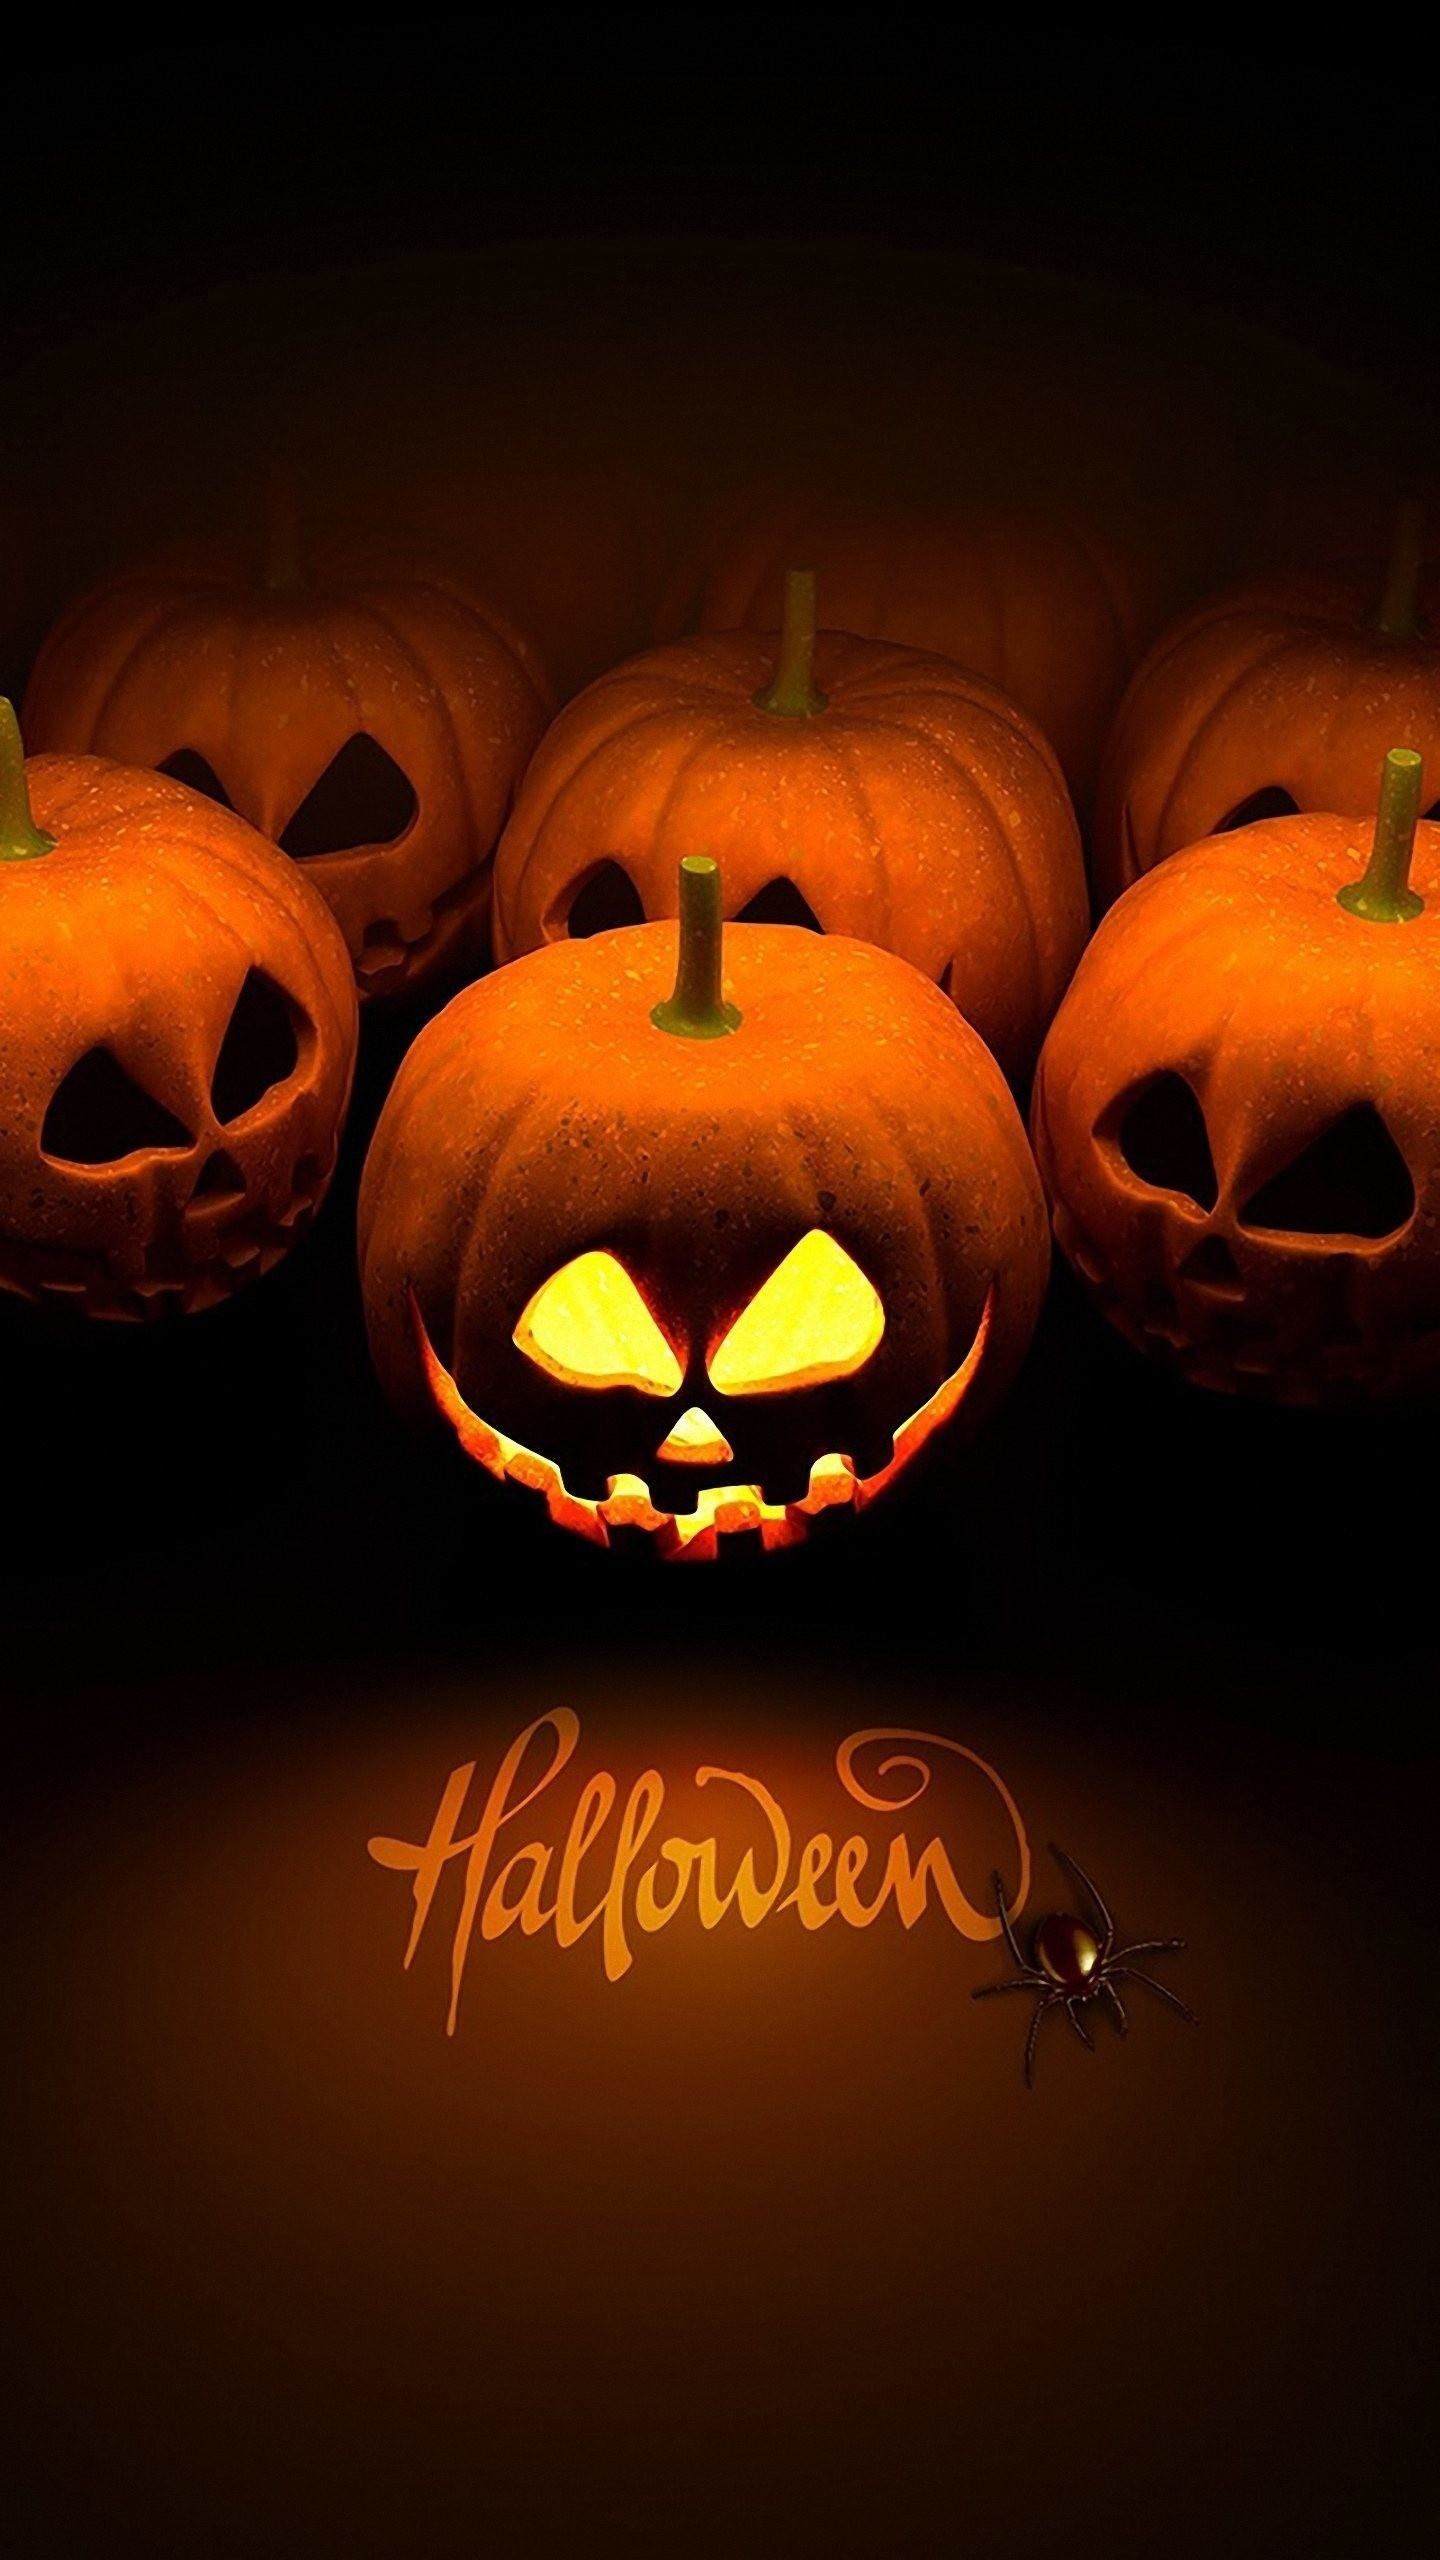 1440x2560 halloween lock screen wallpaper #683959